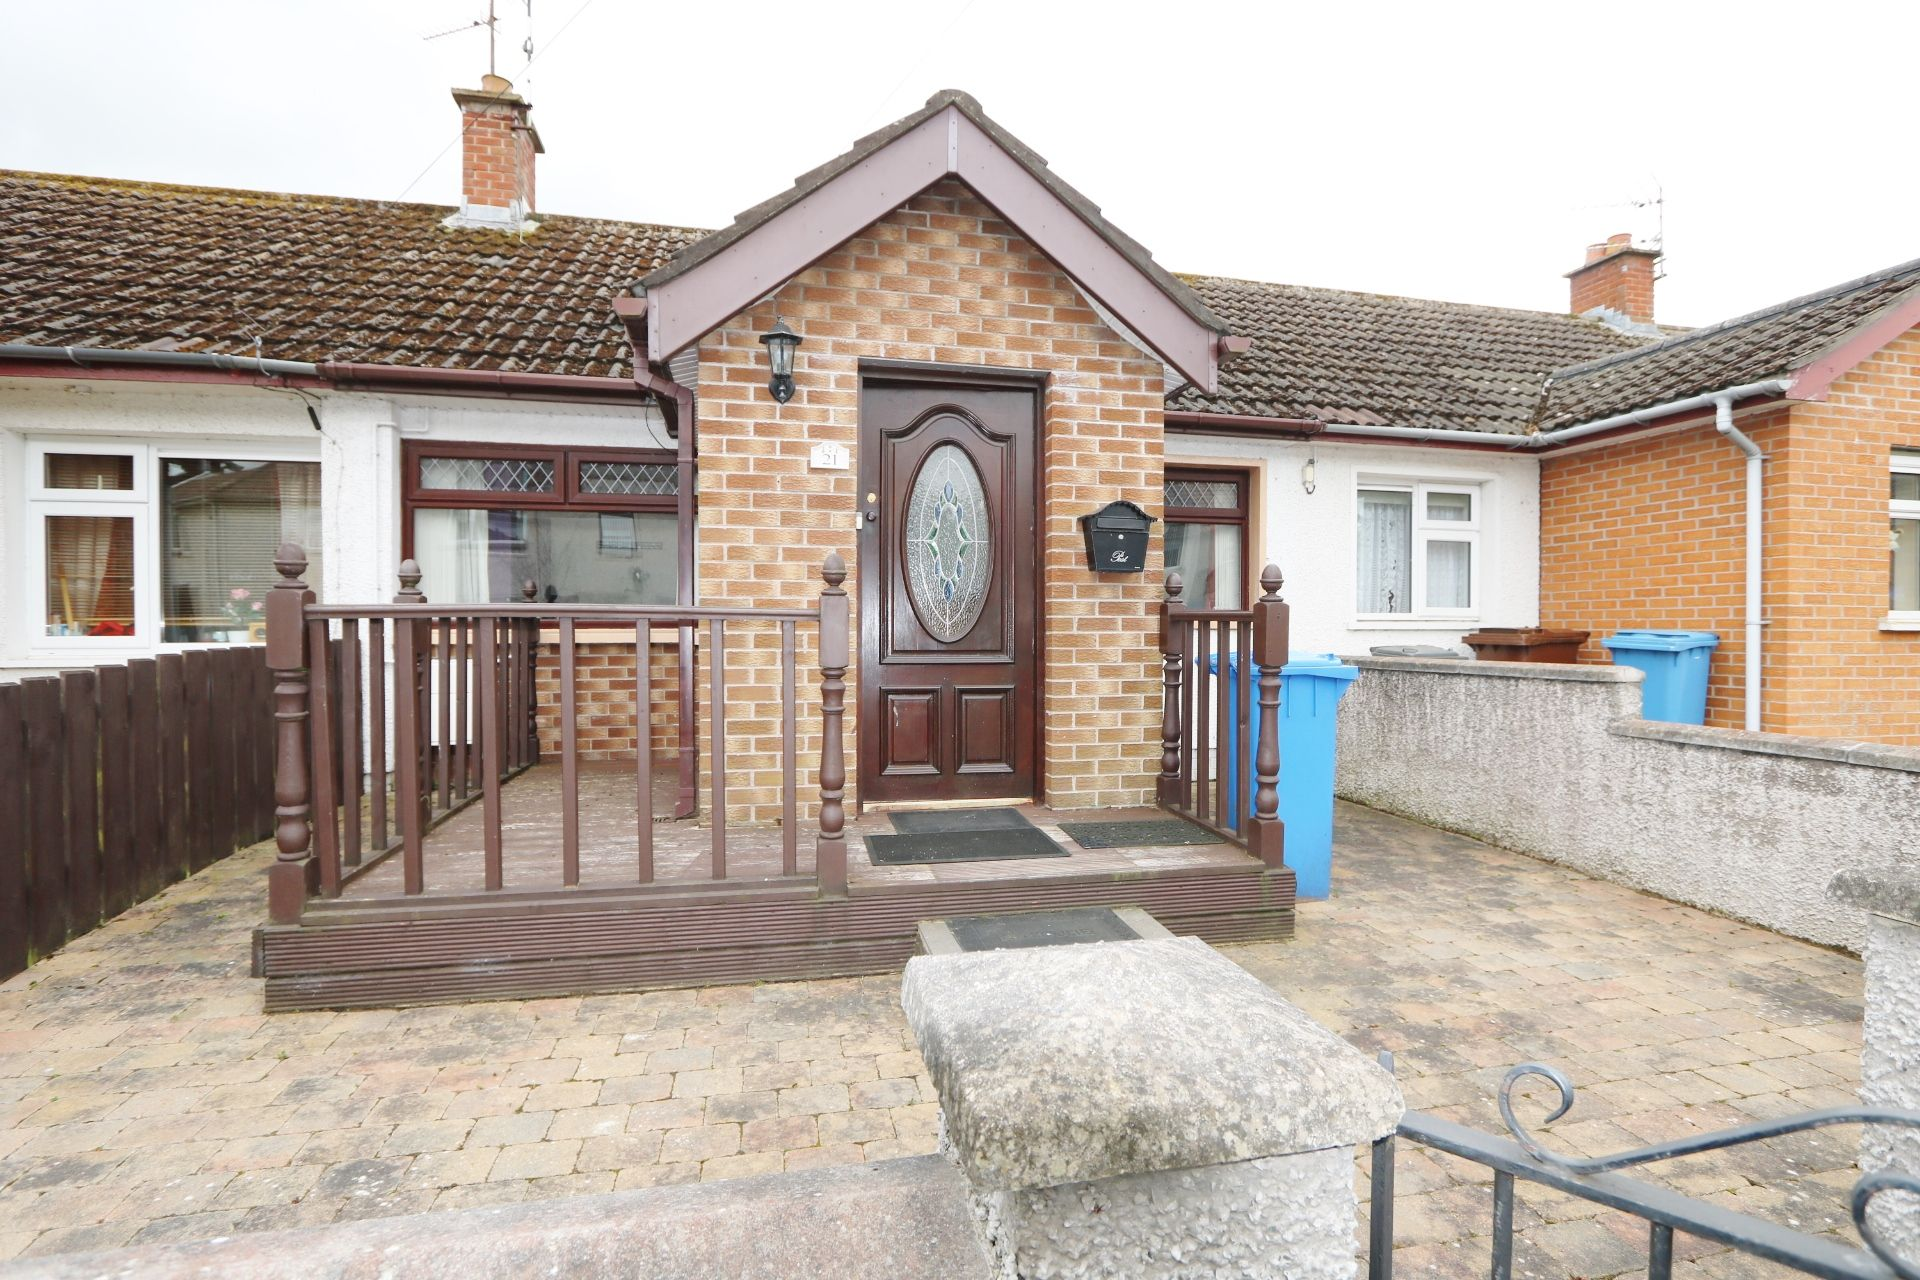 1 bedroom terraced bungalow For Sale in Antrim - Property photograph